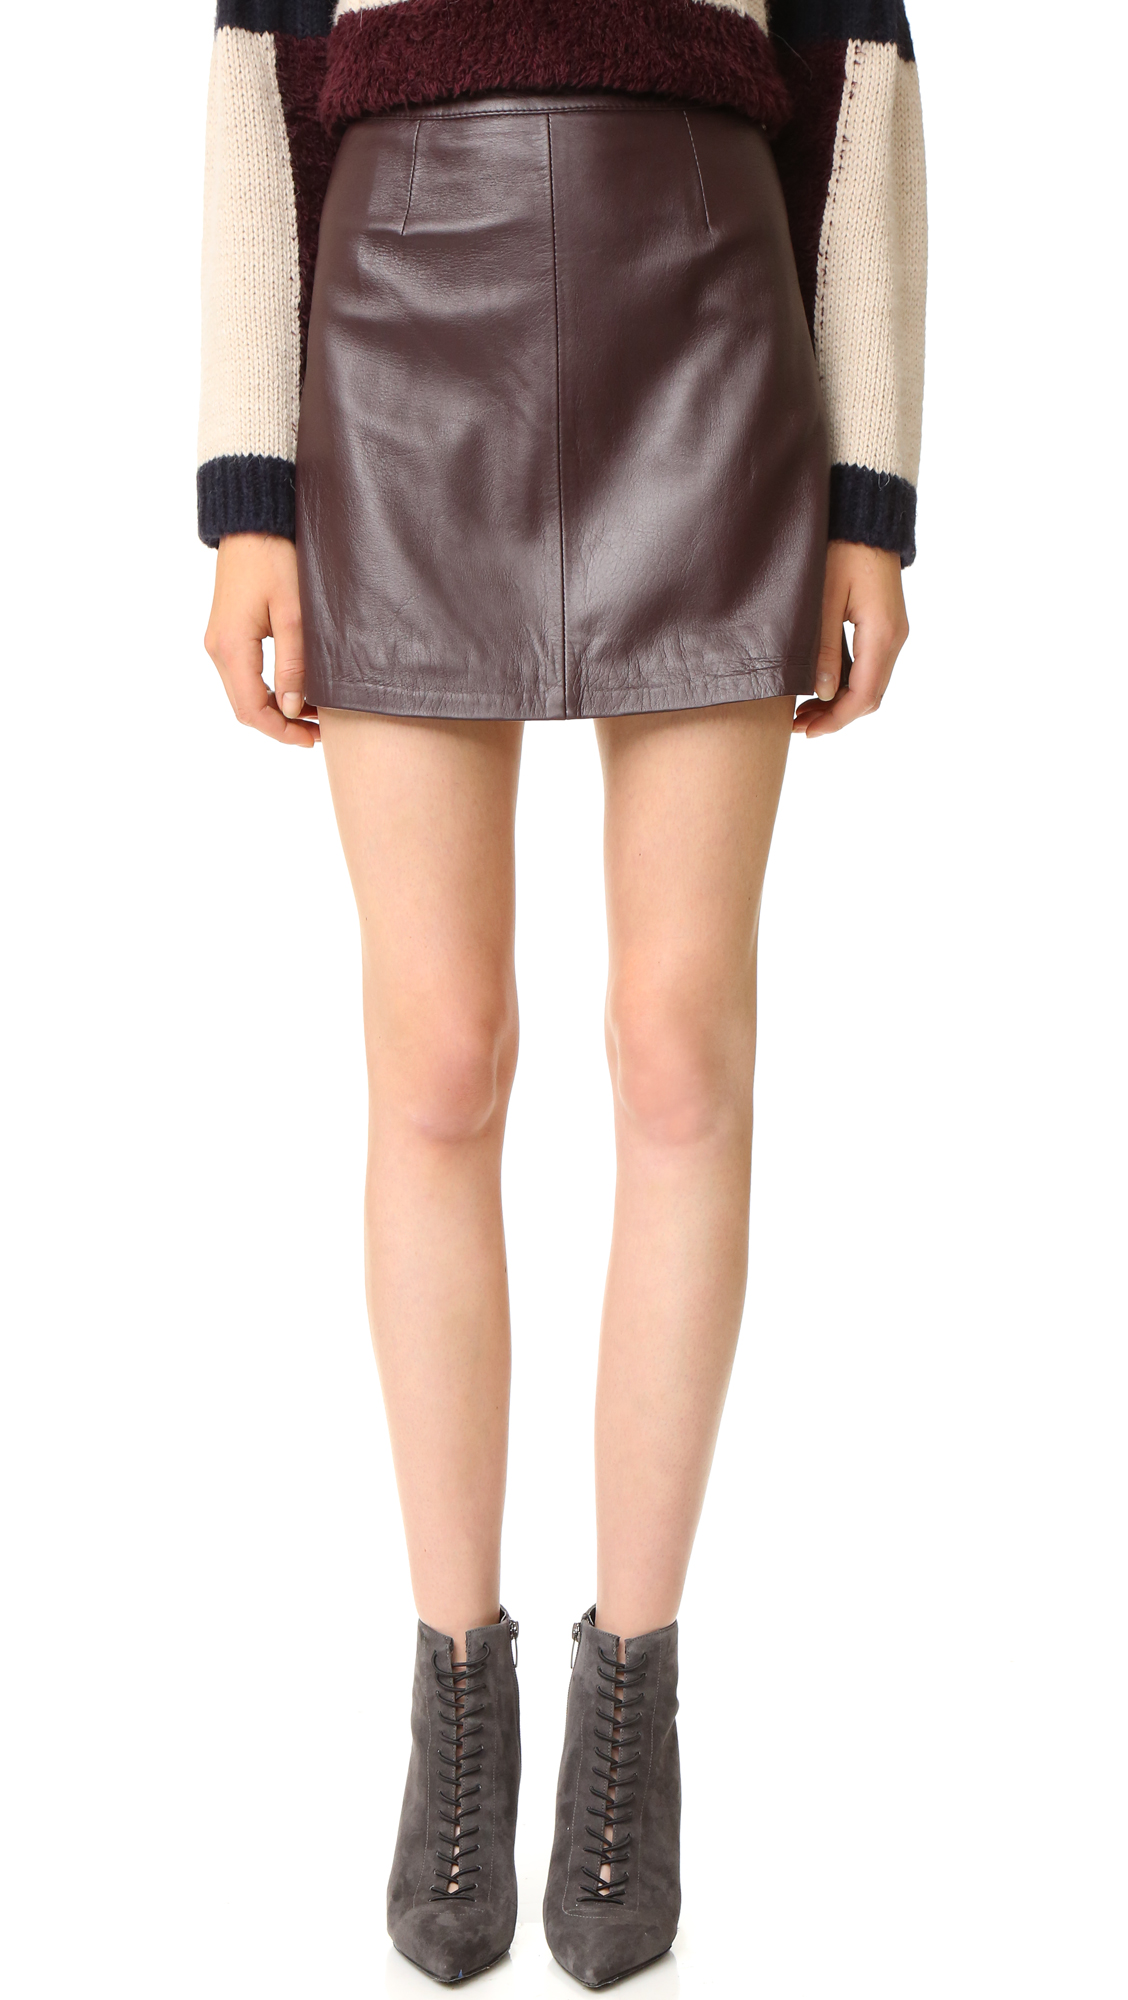 A leather Otto d'ame miniskirt in a classic A line profile. Back zip. Lined. Fabric: Soft leather. 100% sheepskin. Leather clean. Made in Italy. Measurements Length: 16.5in / 42cm Measurements from size 40. Available sizes: 44